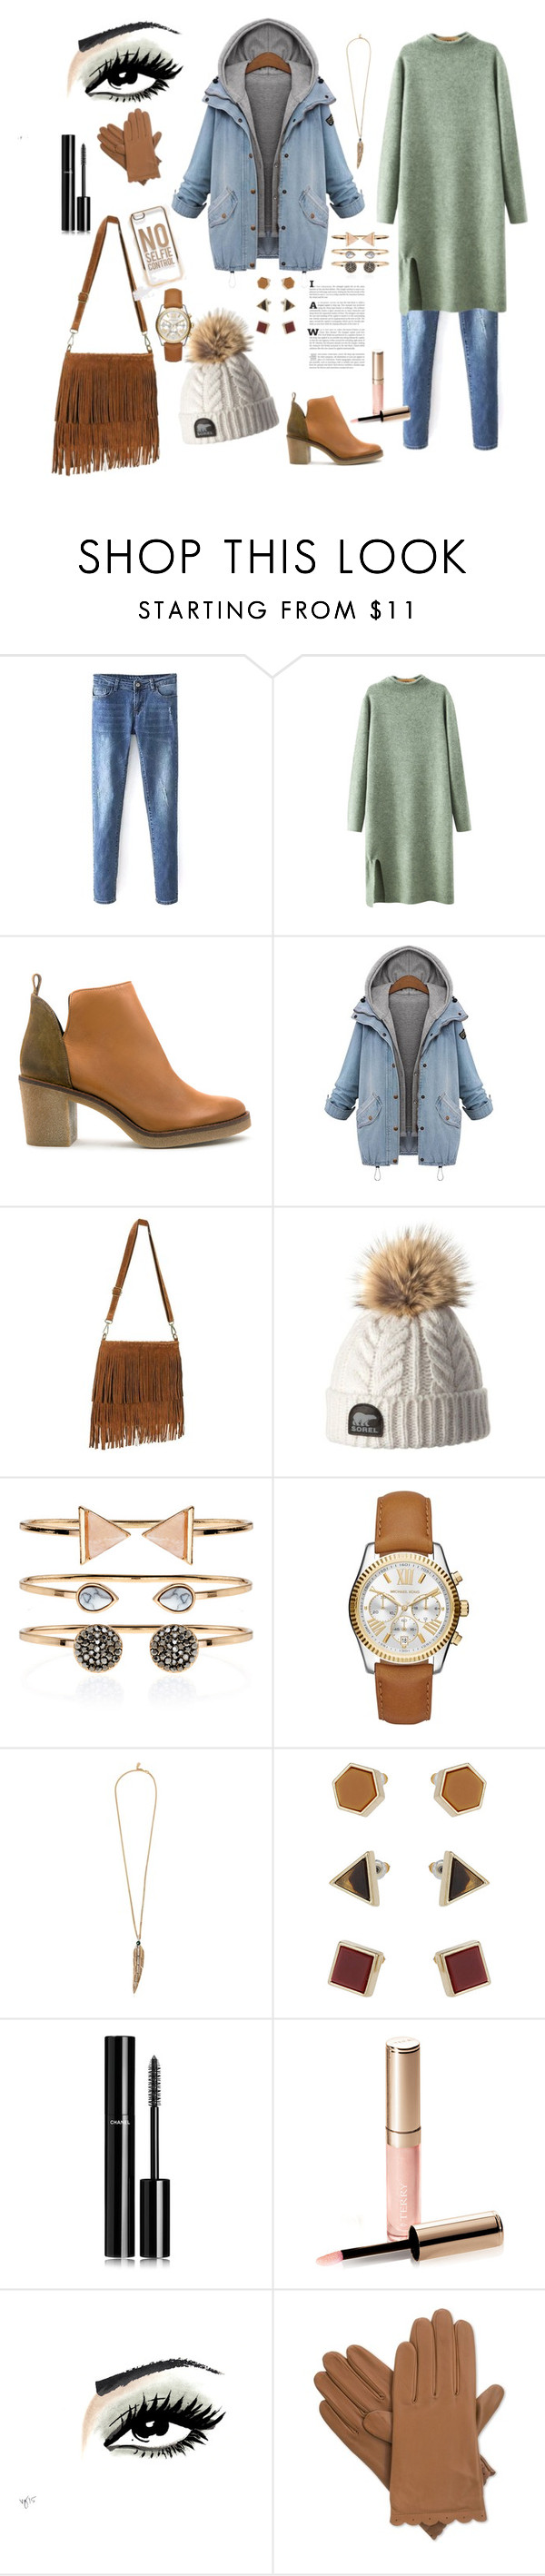 """❄WINTER❄"" by paulagar ❤ liked on Polyvore featuring Chicnova Fashion, Miista, Accessorize, Michael Kors, Roberto Cavalli, Topshop, Chanel, By Terry, Isotoner and ASOS"